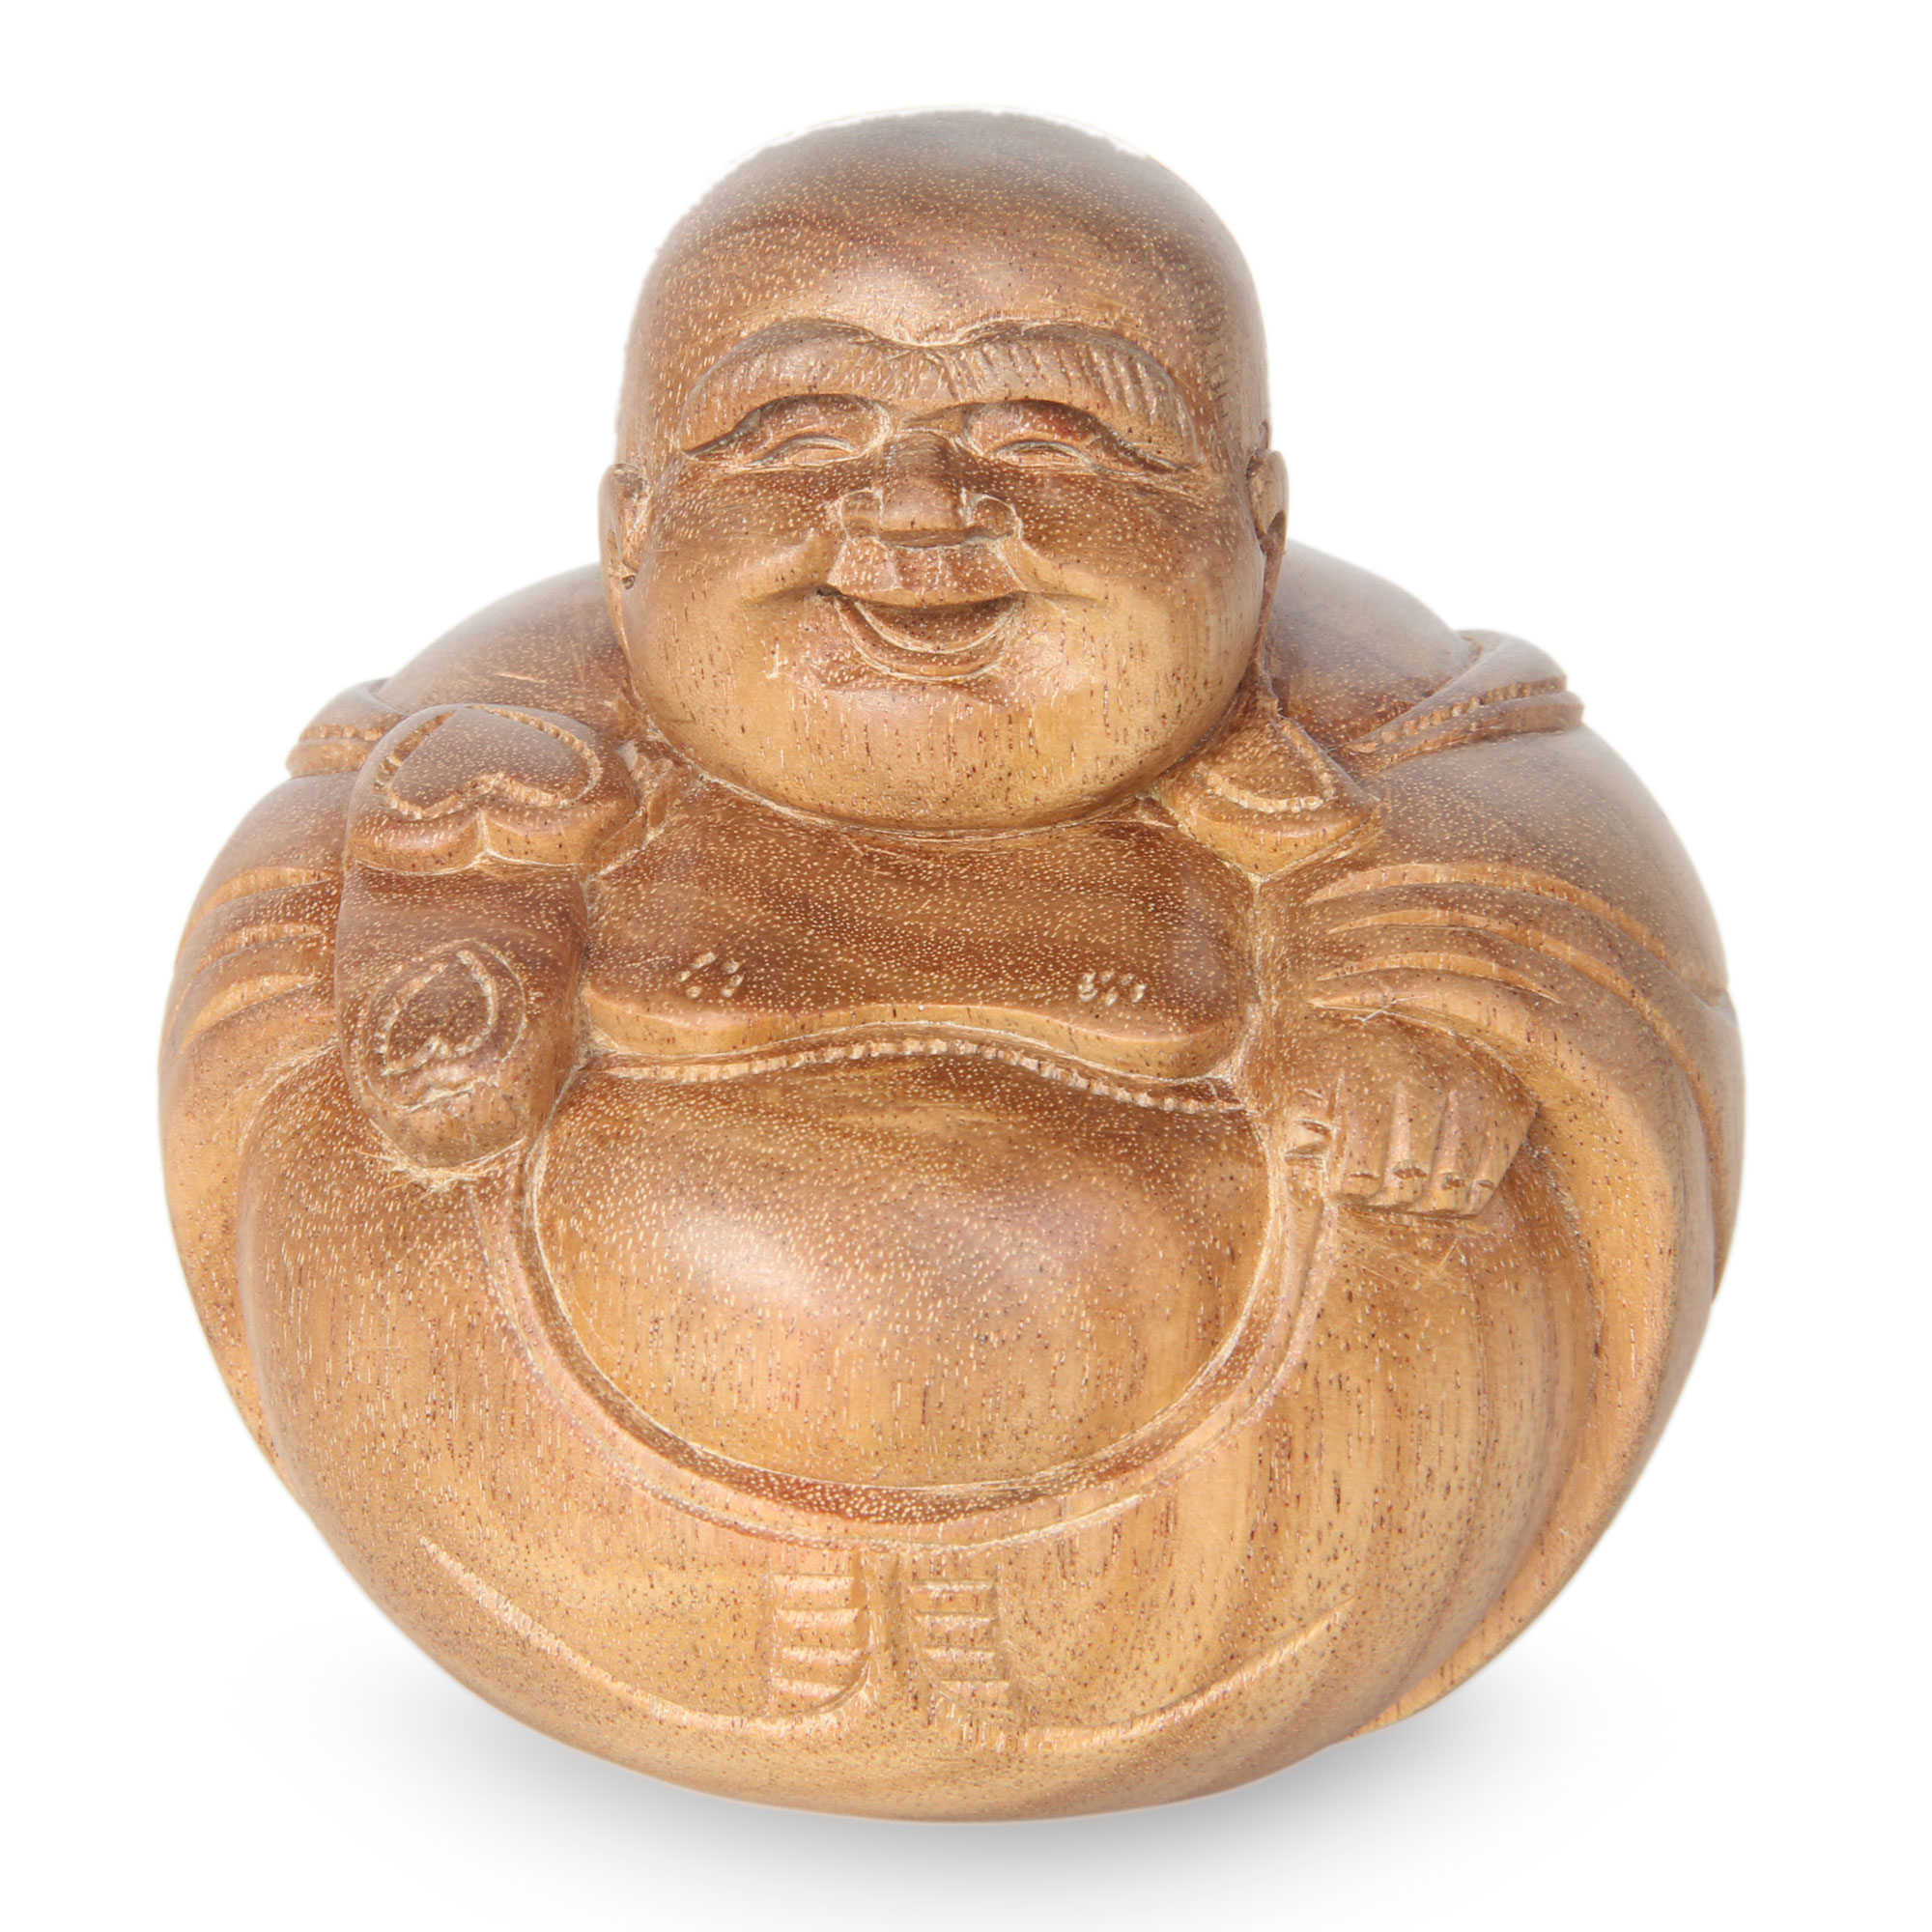 Laughing Buddha Sculpture, Laughing Buddha'